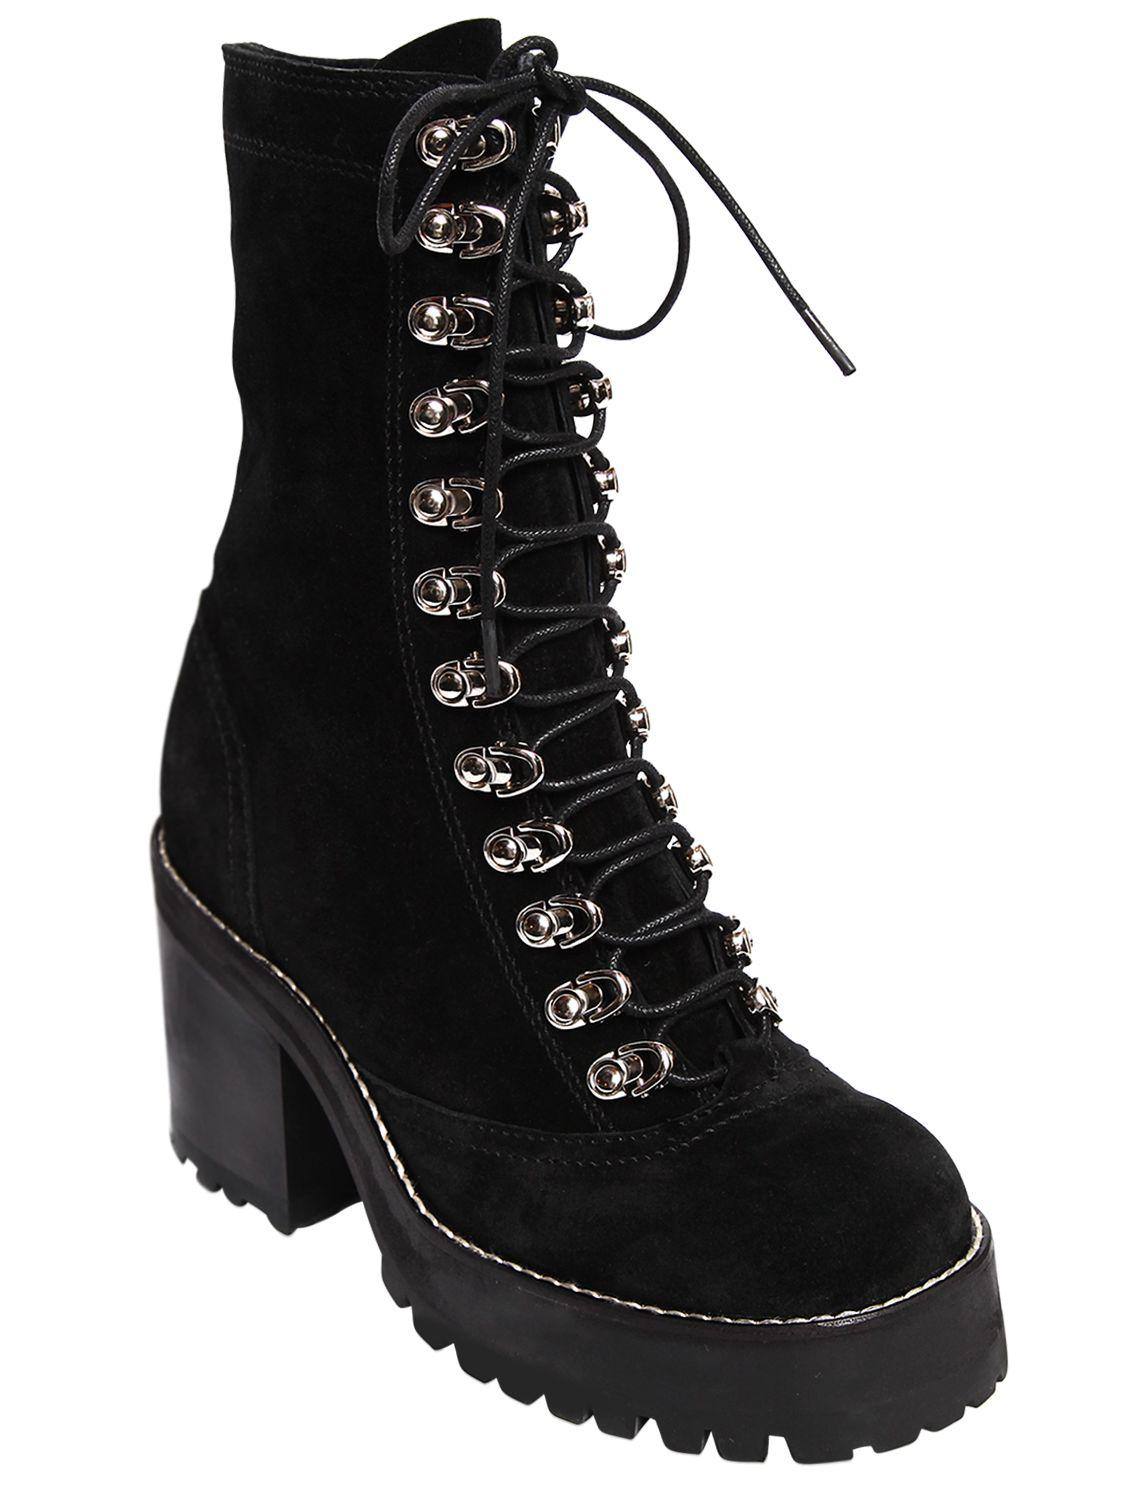 Jeffrey Campbell 70mm Sequoia Lace Up Suede Boots In Black